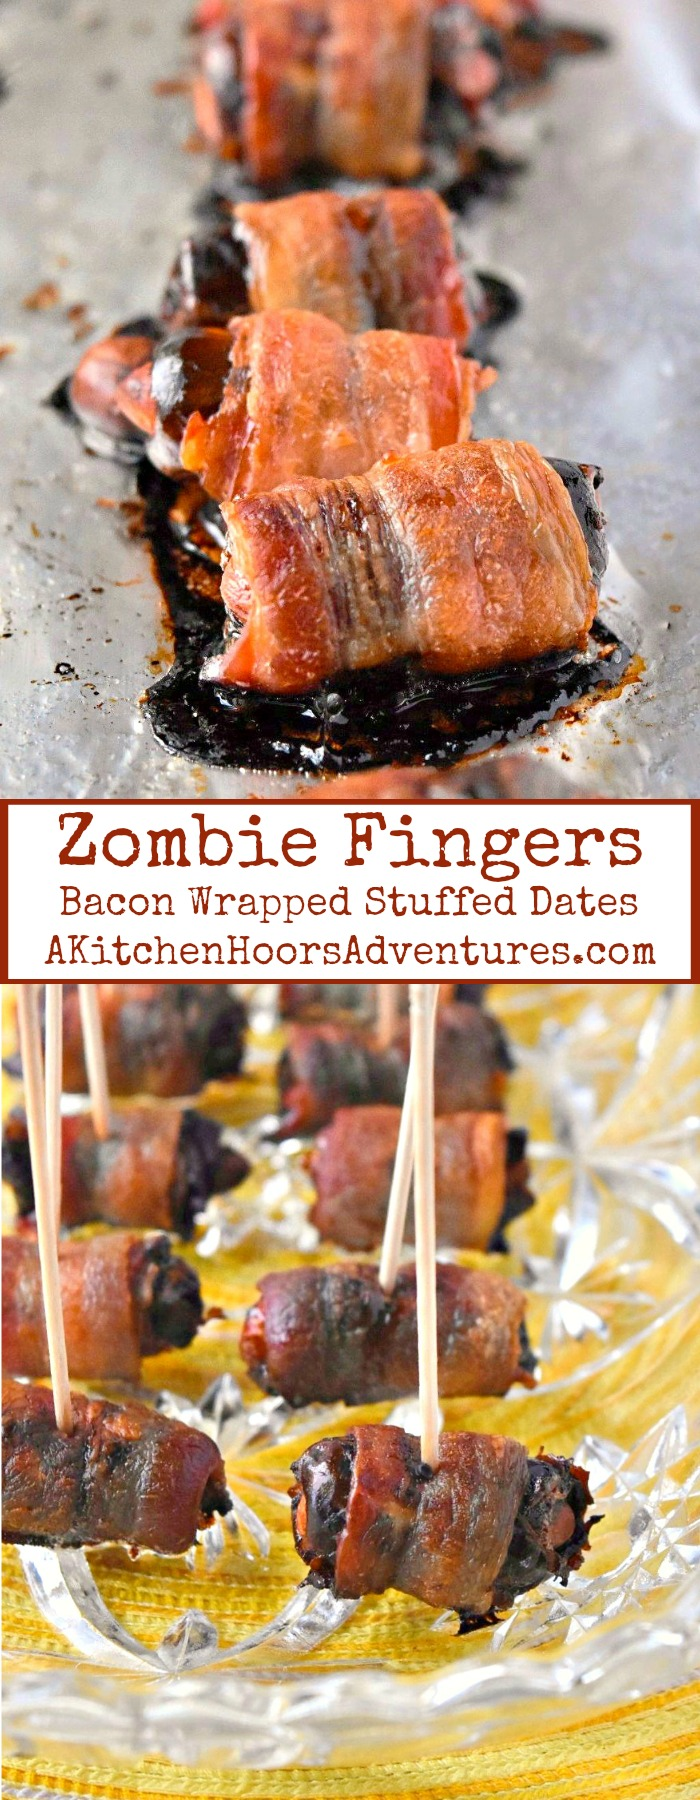 Zombie Fingers (aka Bacon Wrapped Almond Stuffed Dates) have the perfect combination of sweet, salty, savory, and crunch your guests will devour! SundaySupper